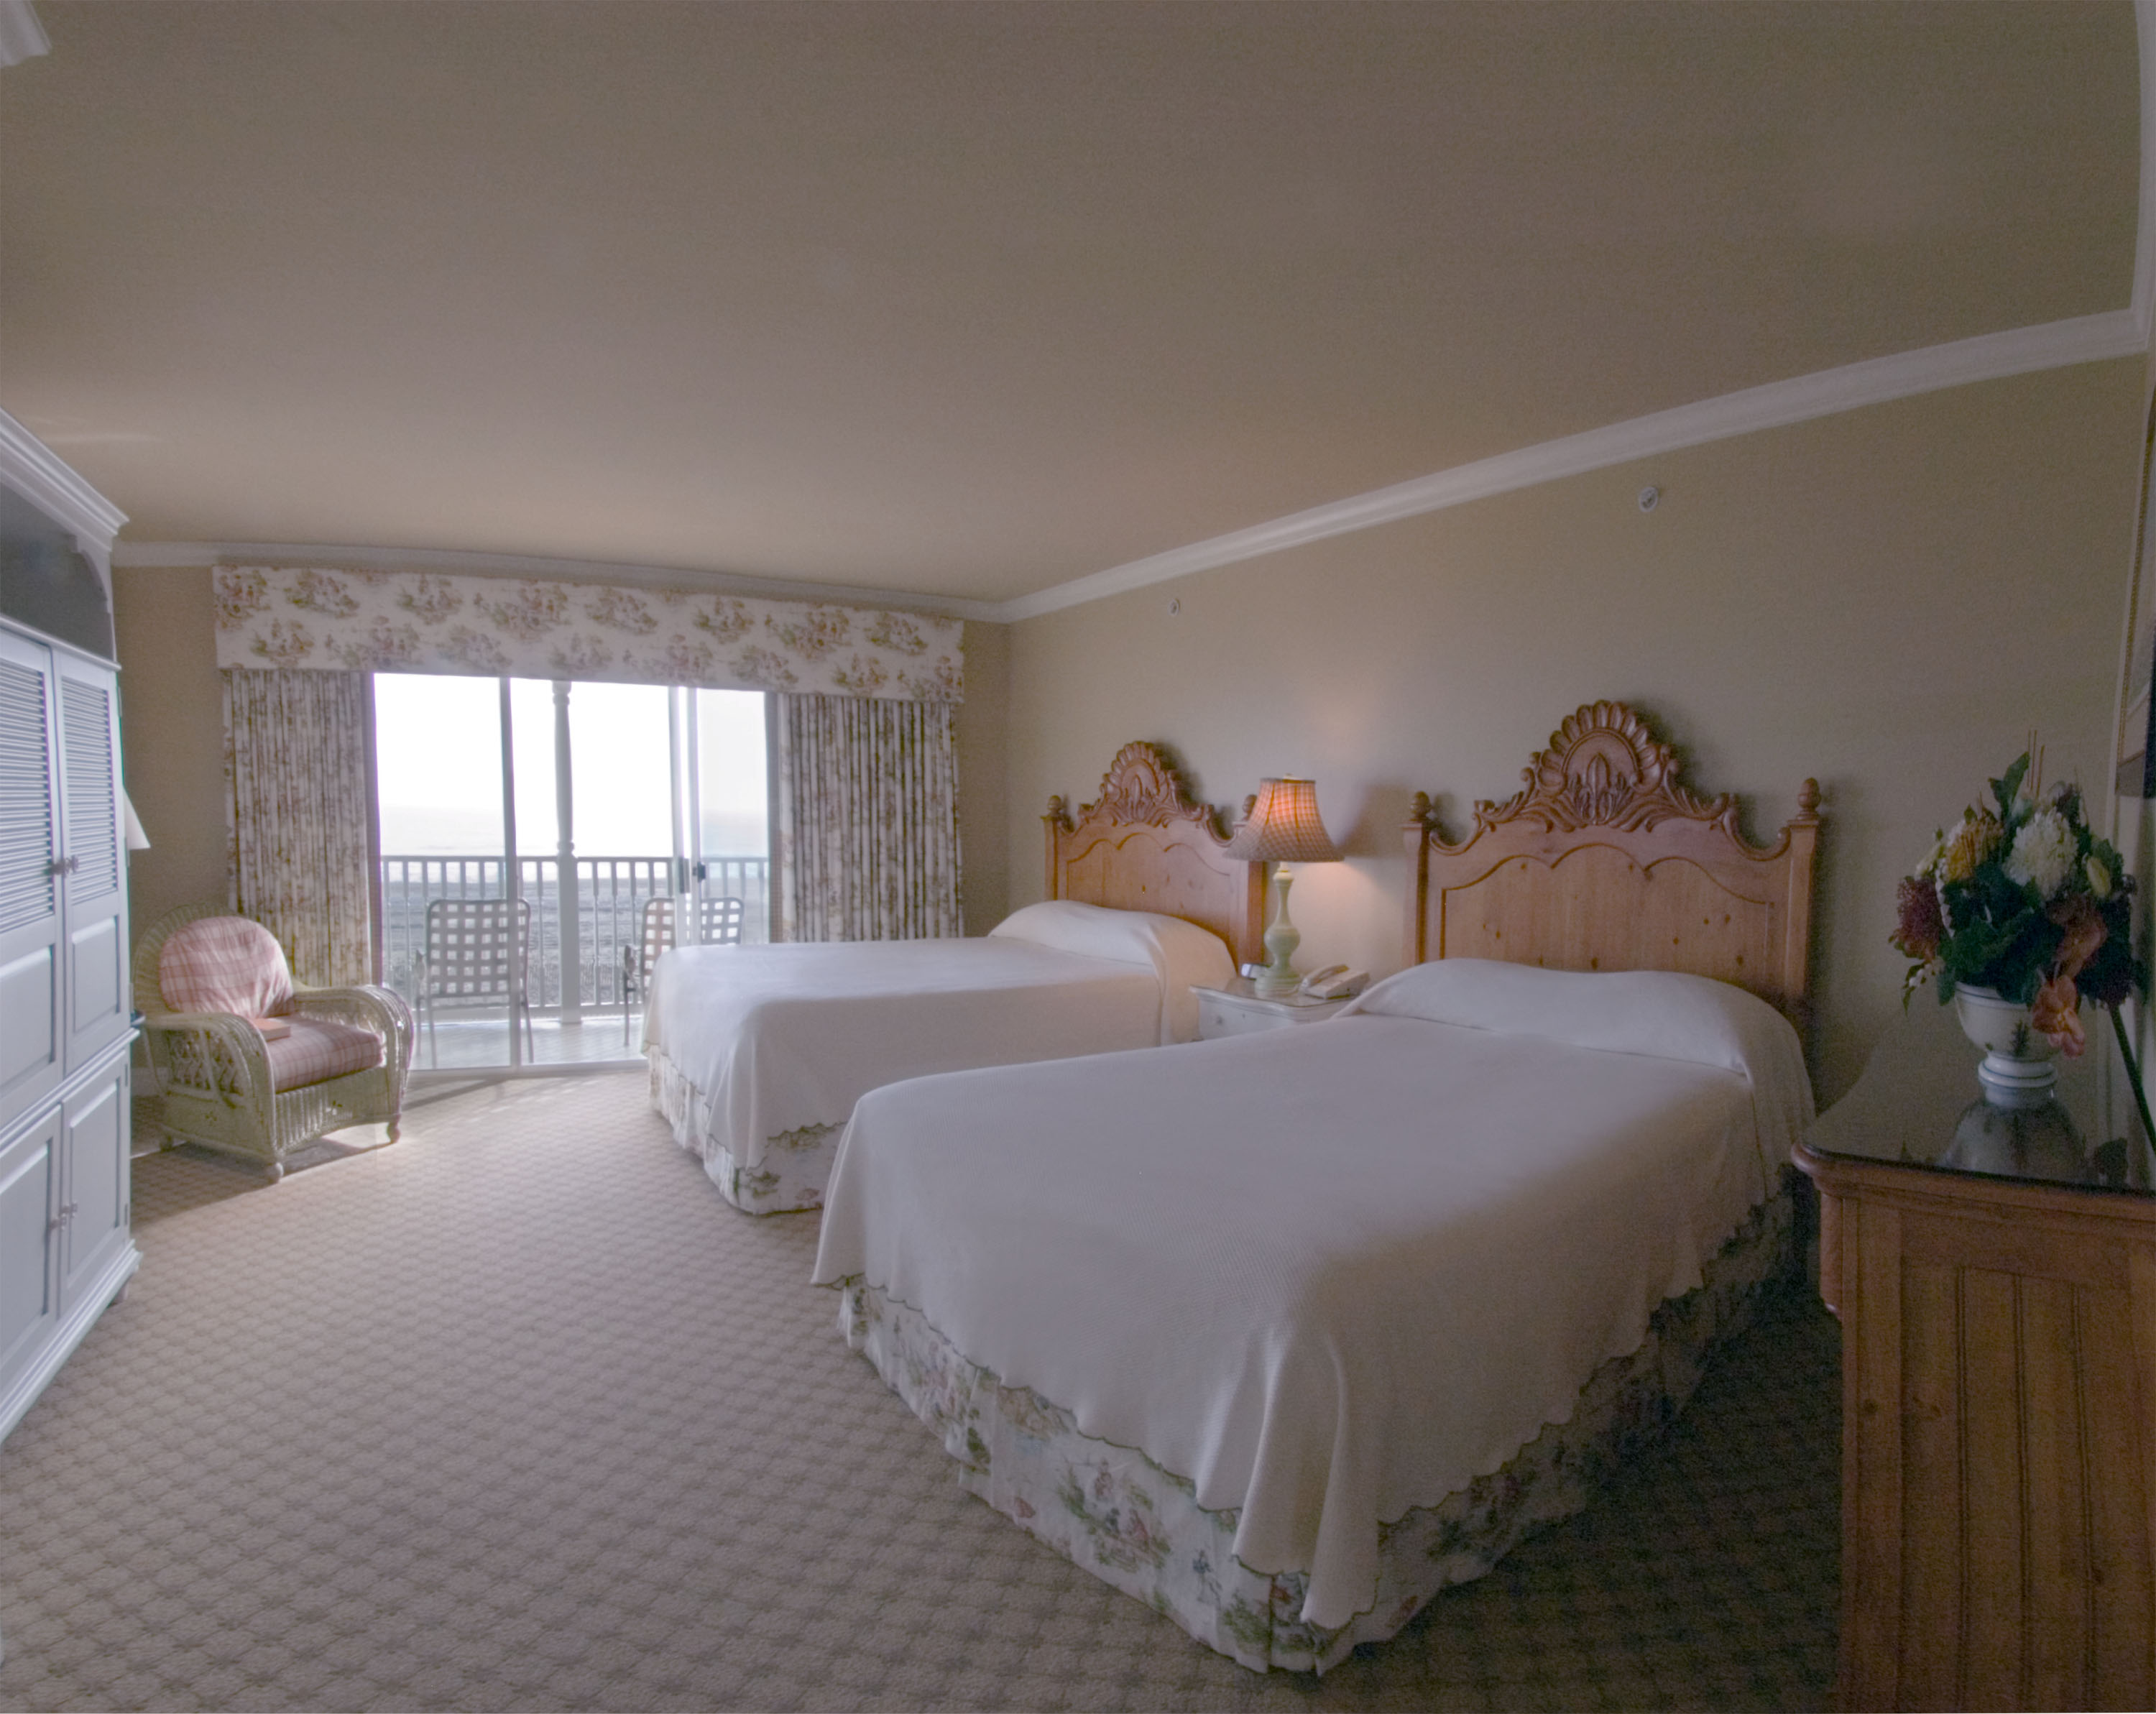 gallery | ocean city md boardwalk hotel | breakers